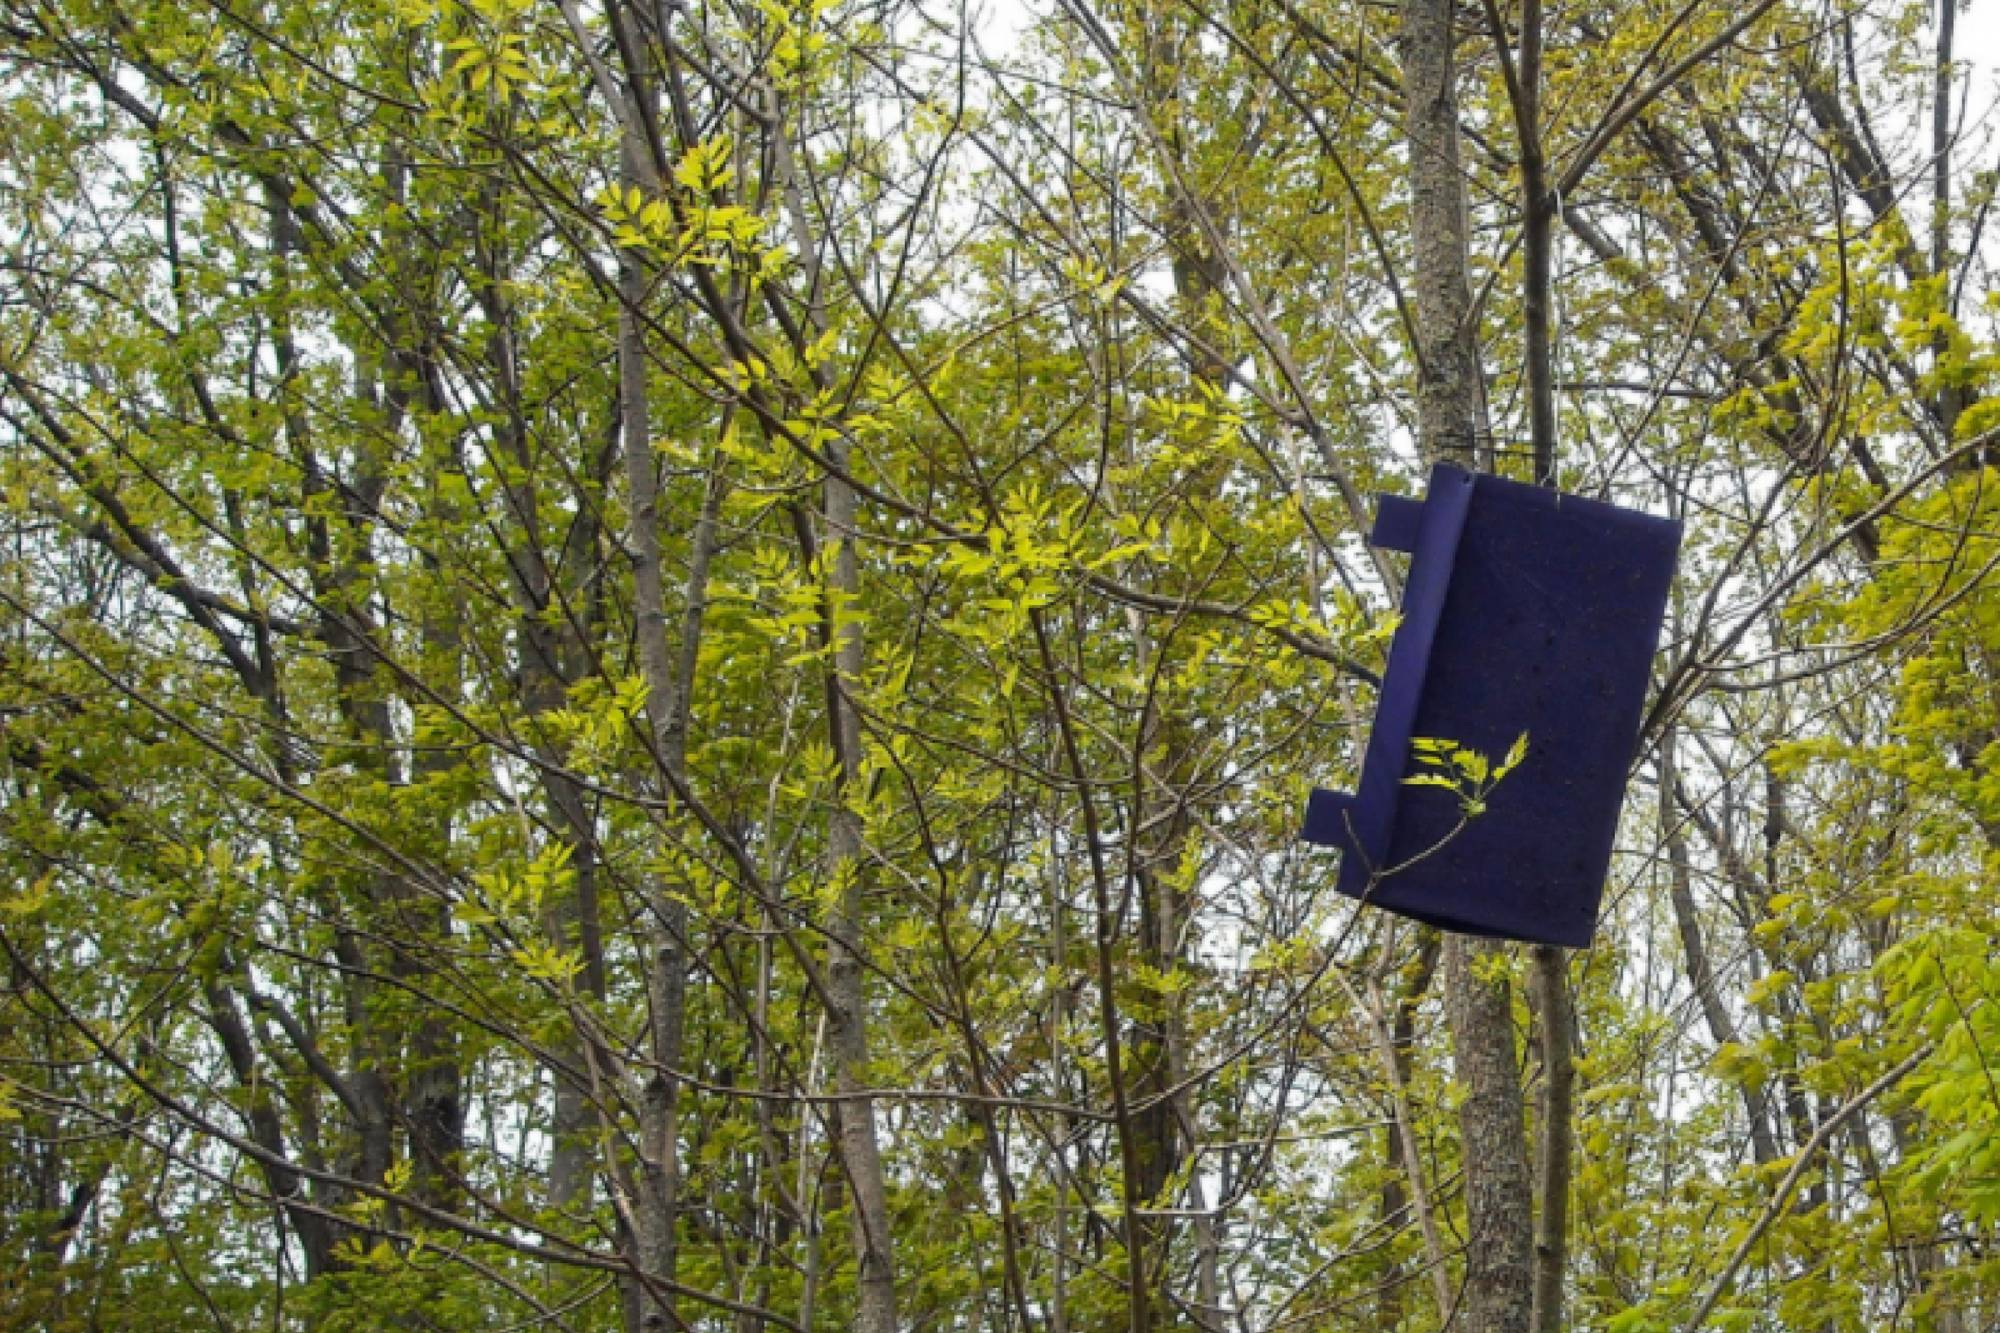 What's that triangular purple box hanging in trees?